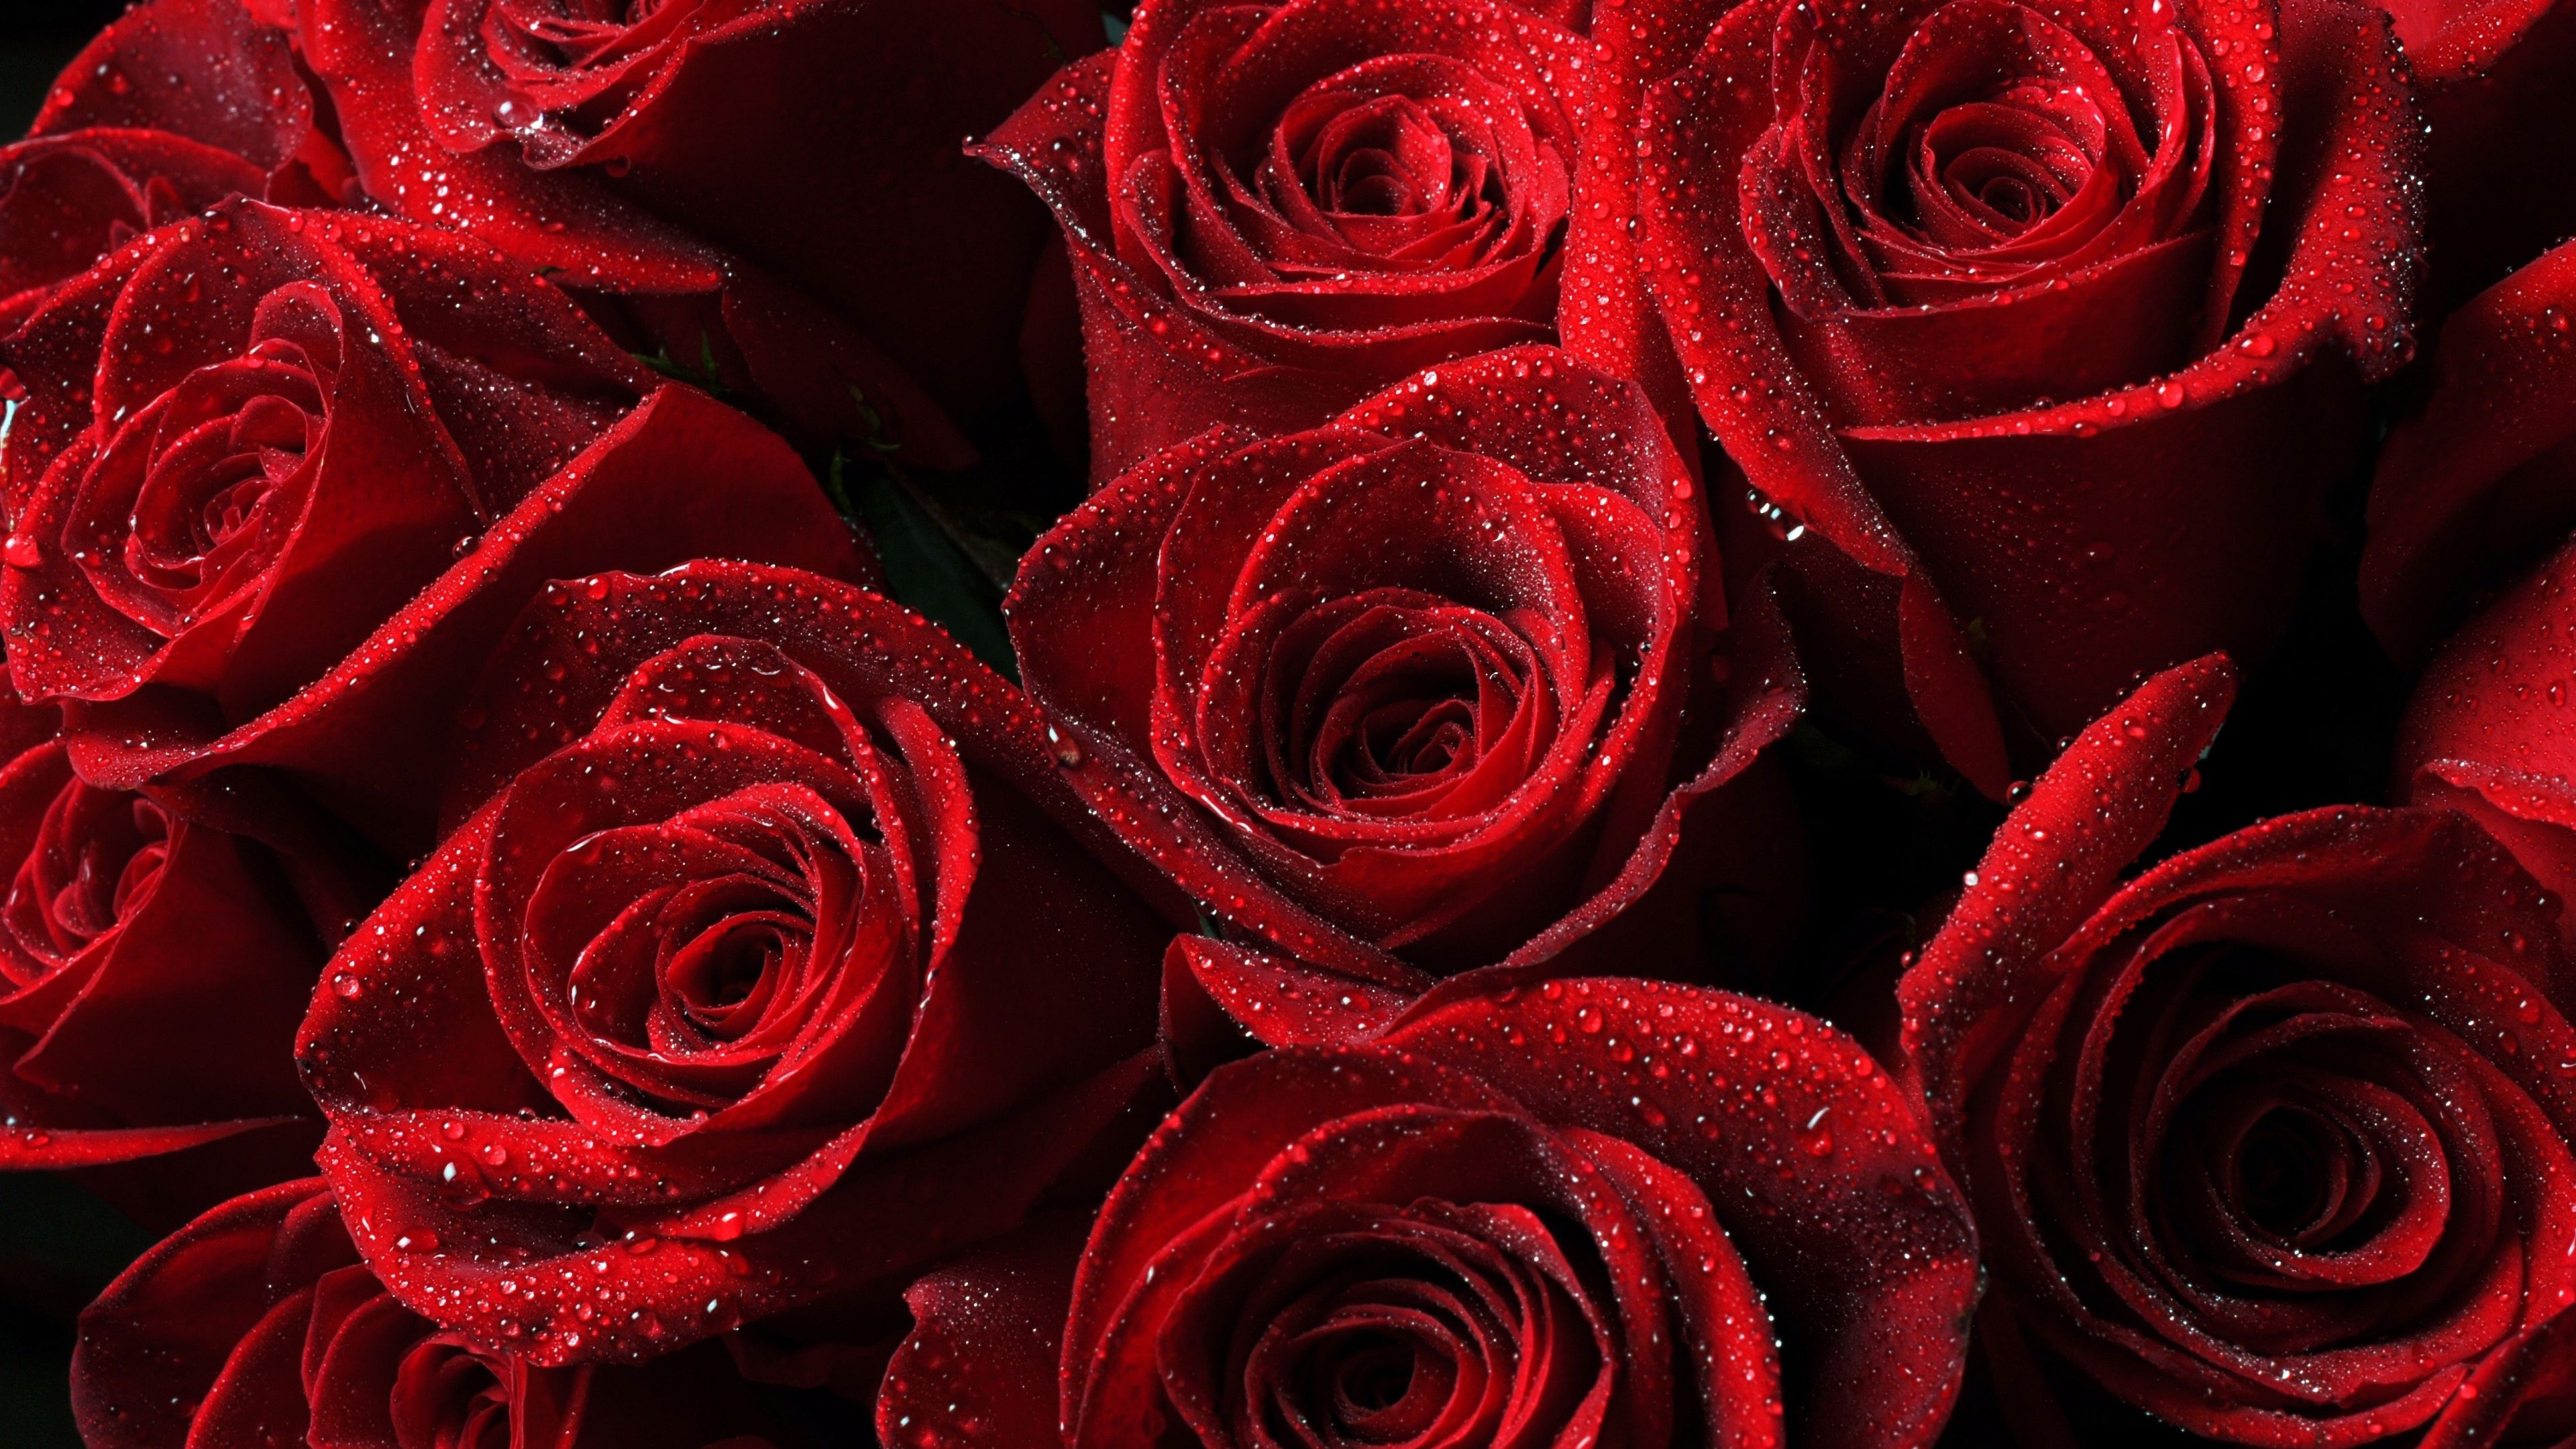 Ultra HD Wallpaper 3840x2160 roses, red, drops, petals 4K